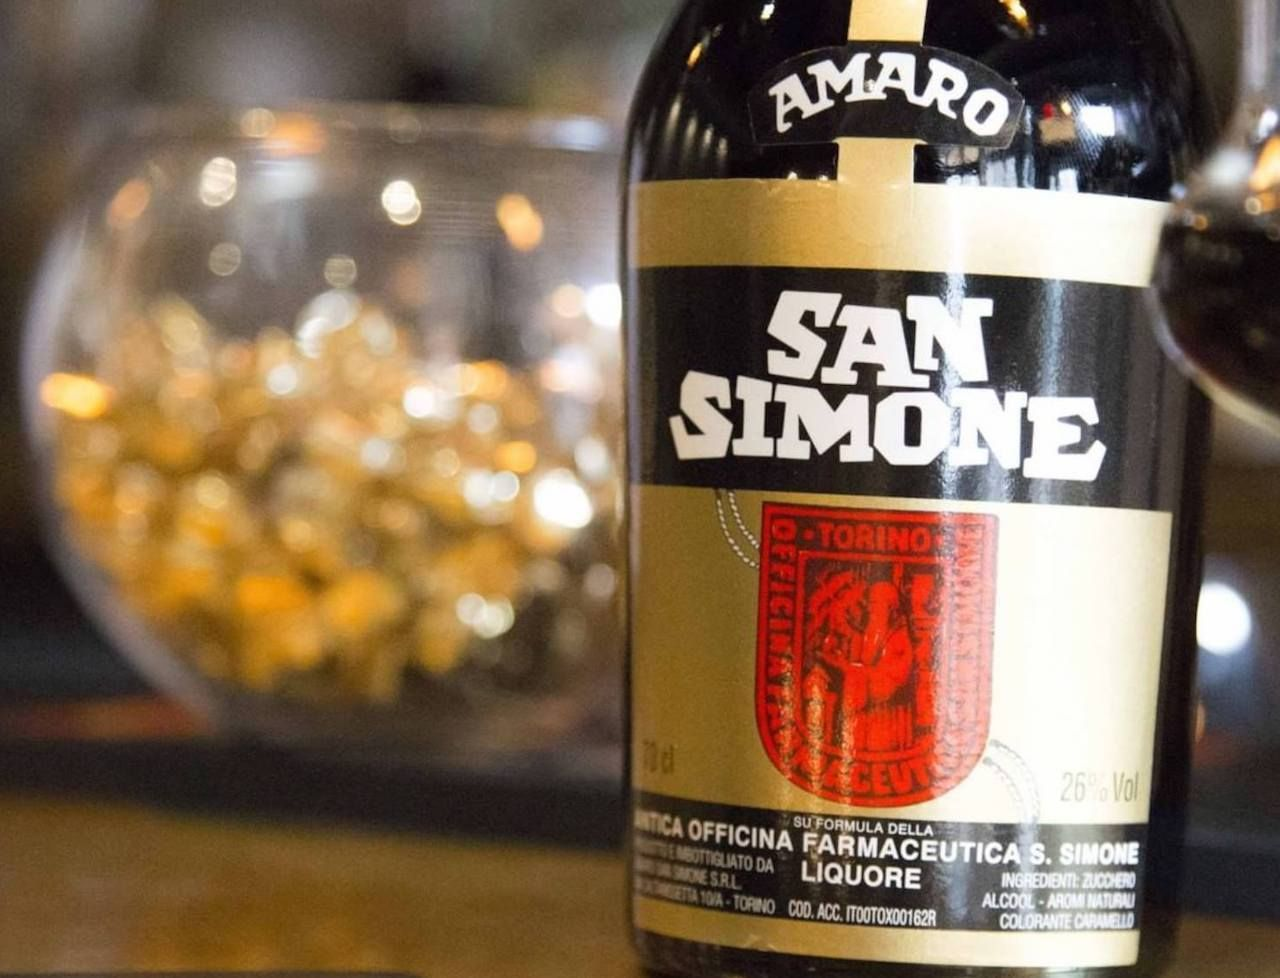 bottle of Amaro San Simone